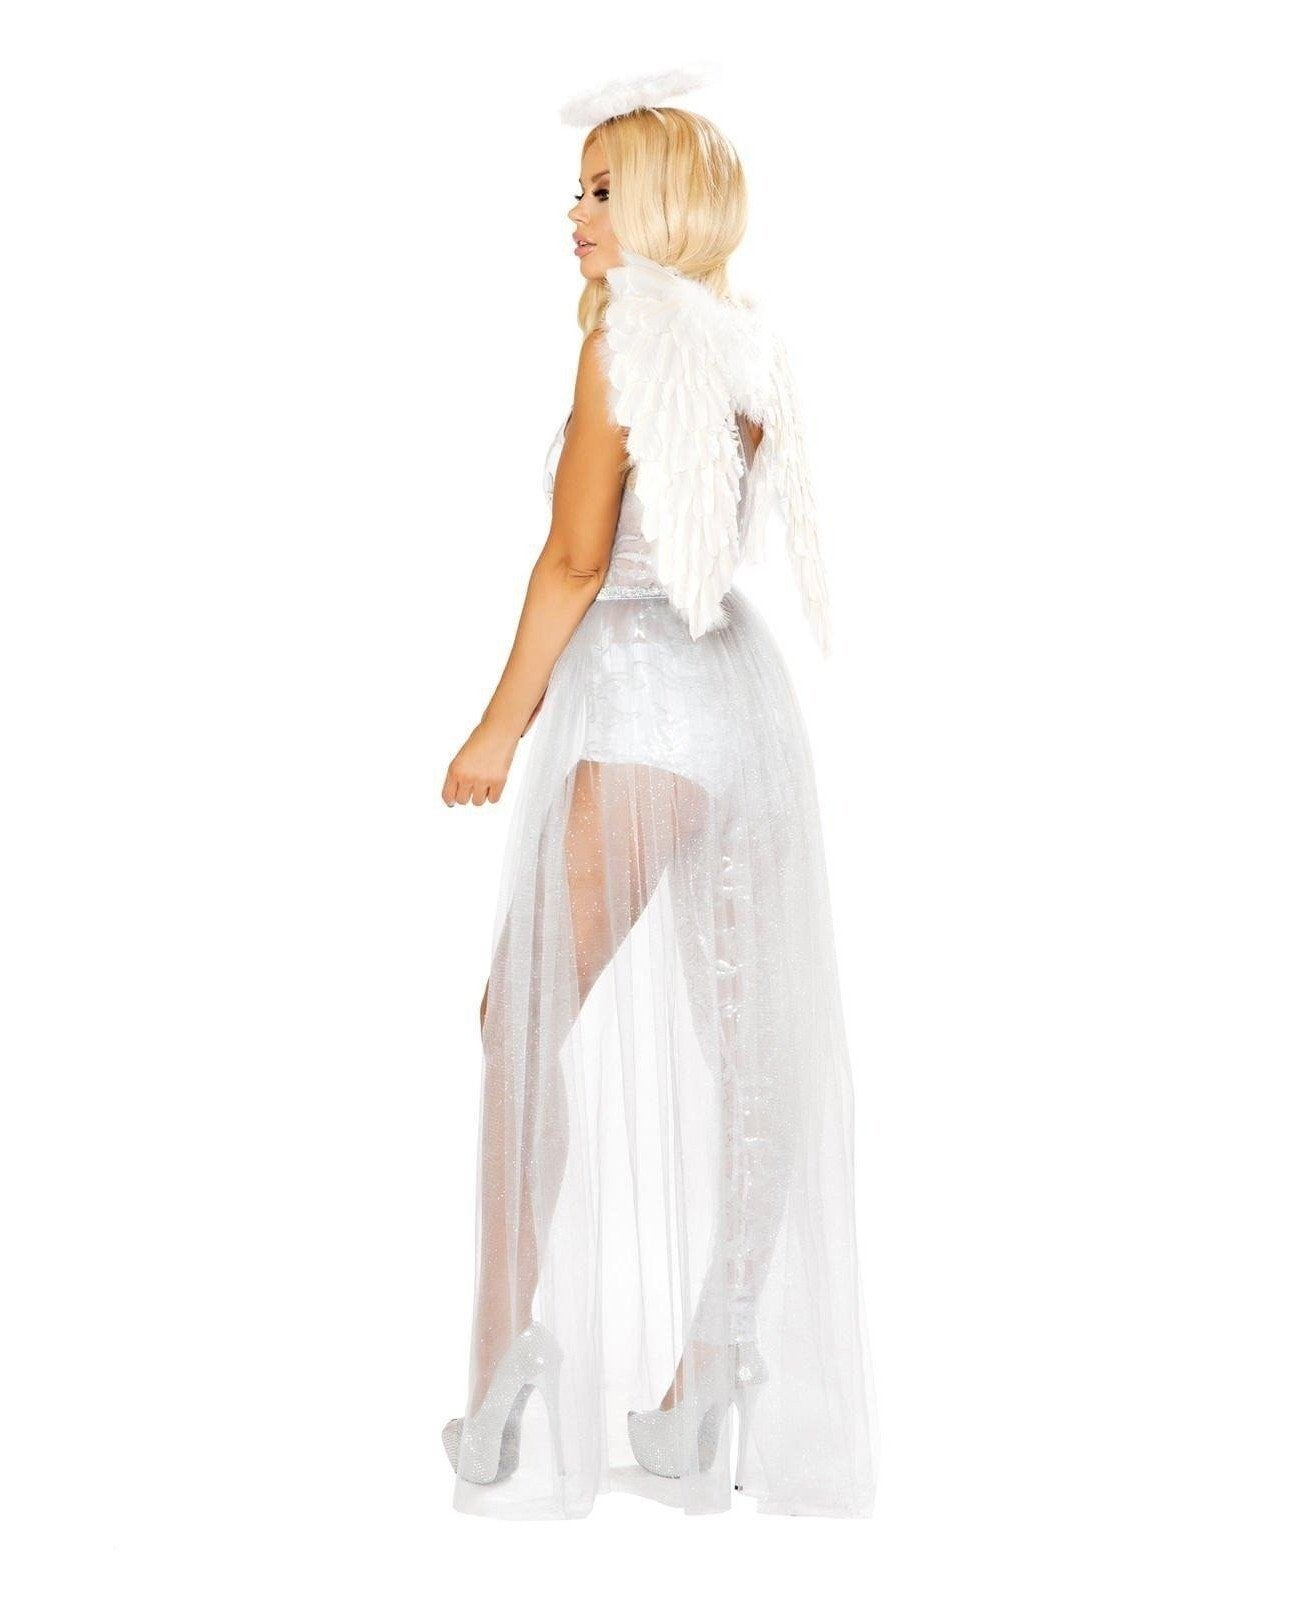 Sweet Angel Costume Costumes Size SmallColor White/SilverNakees